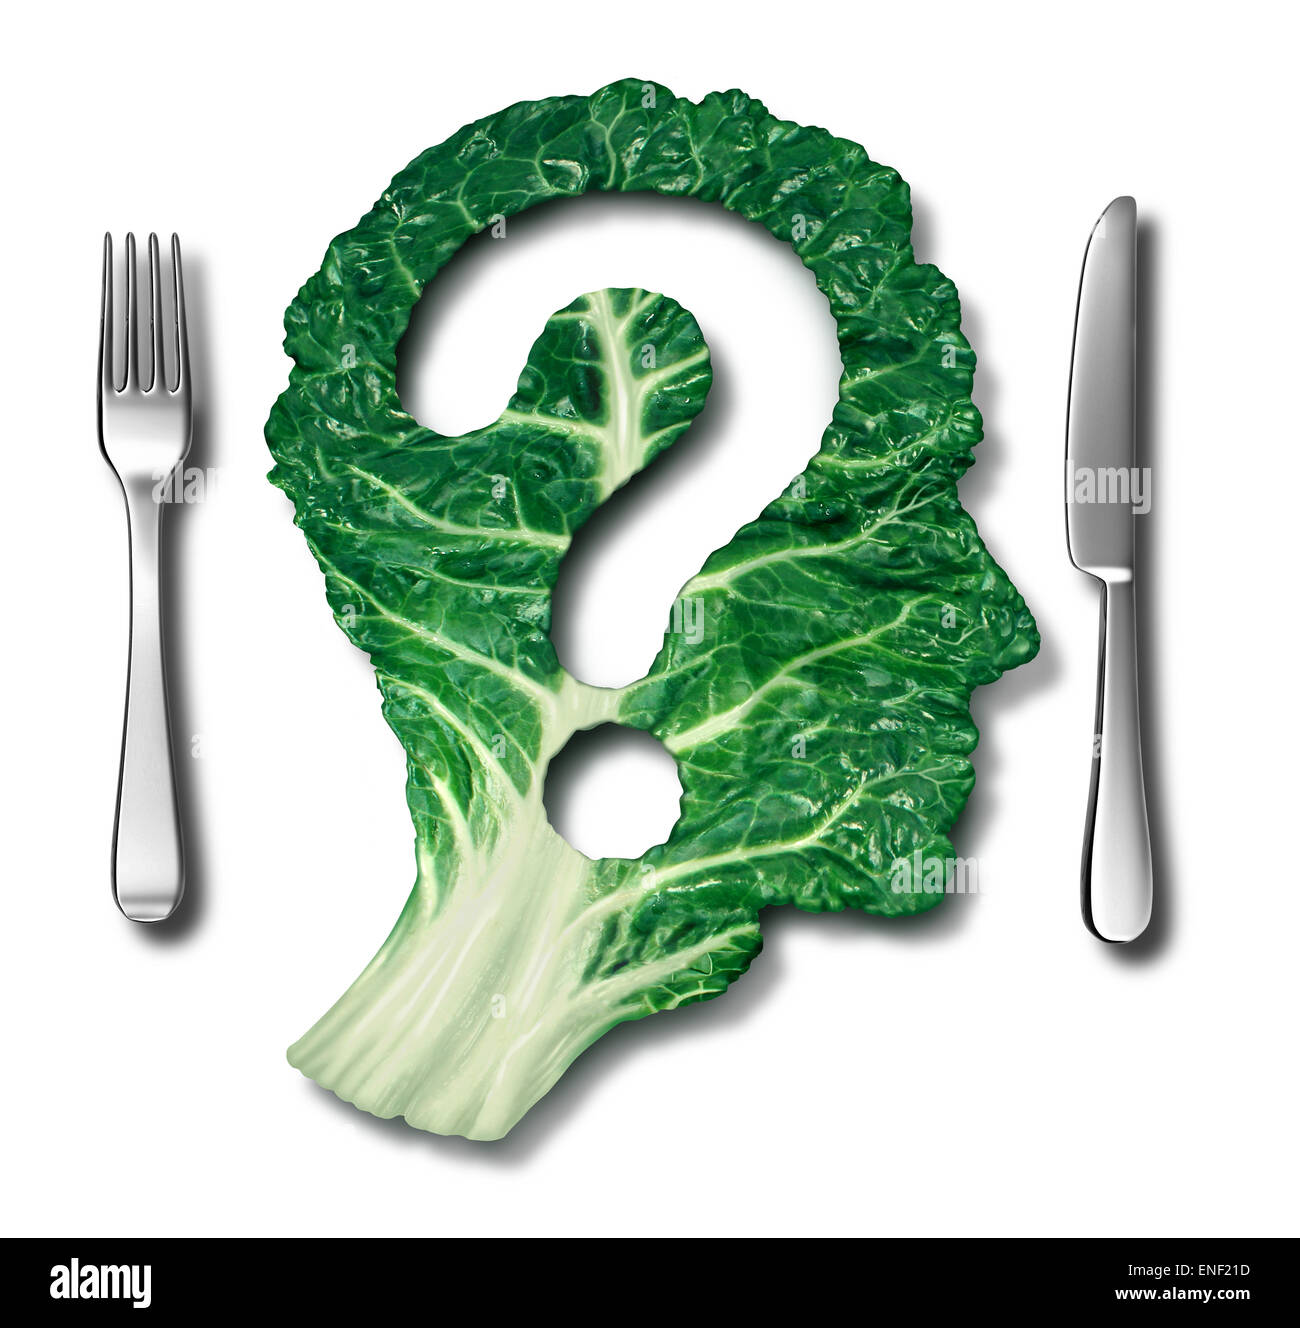 Healthy eating questions and green diet concept as a leafy vegetable in the shape of a question mark as a symbol - Stock Image